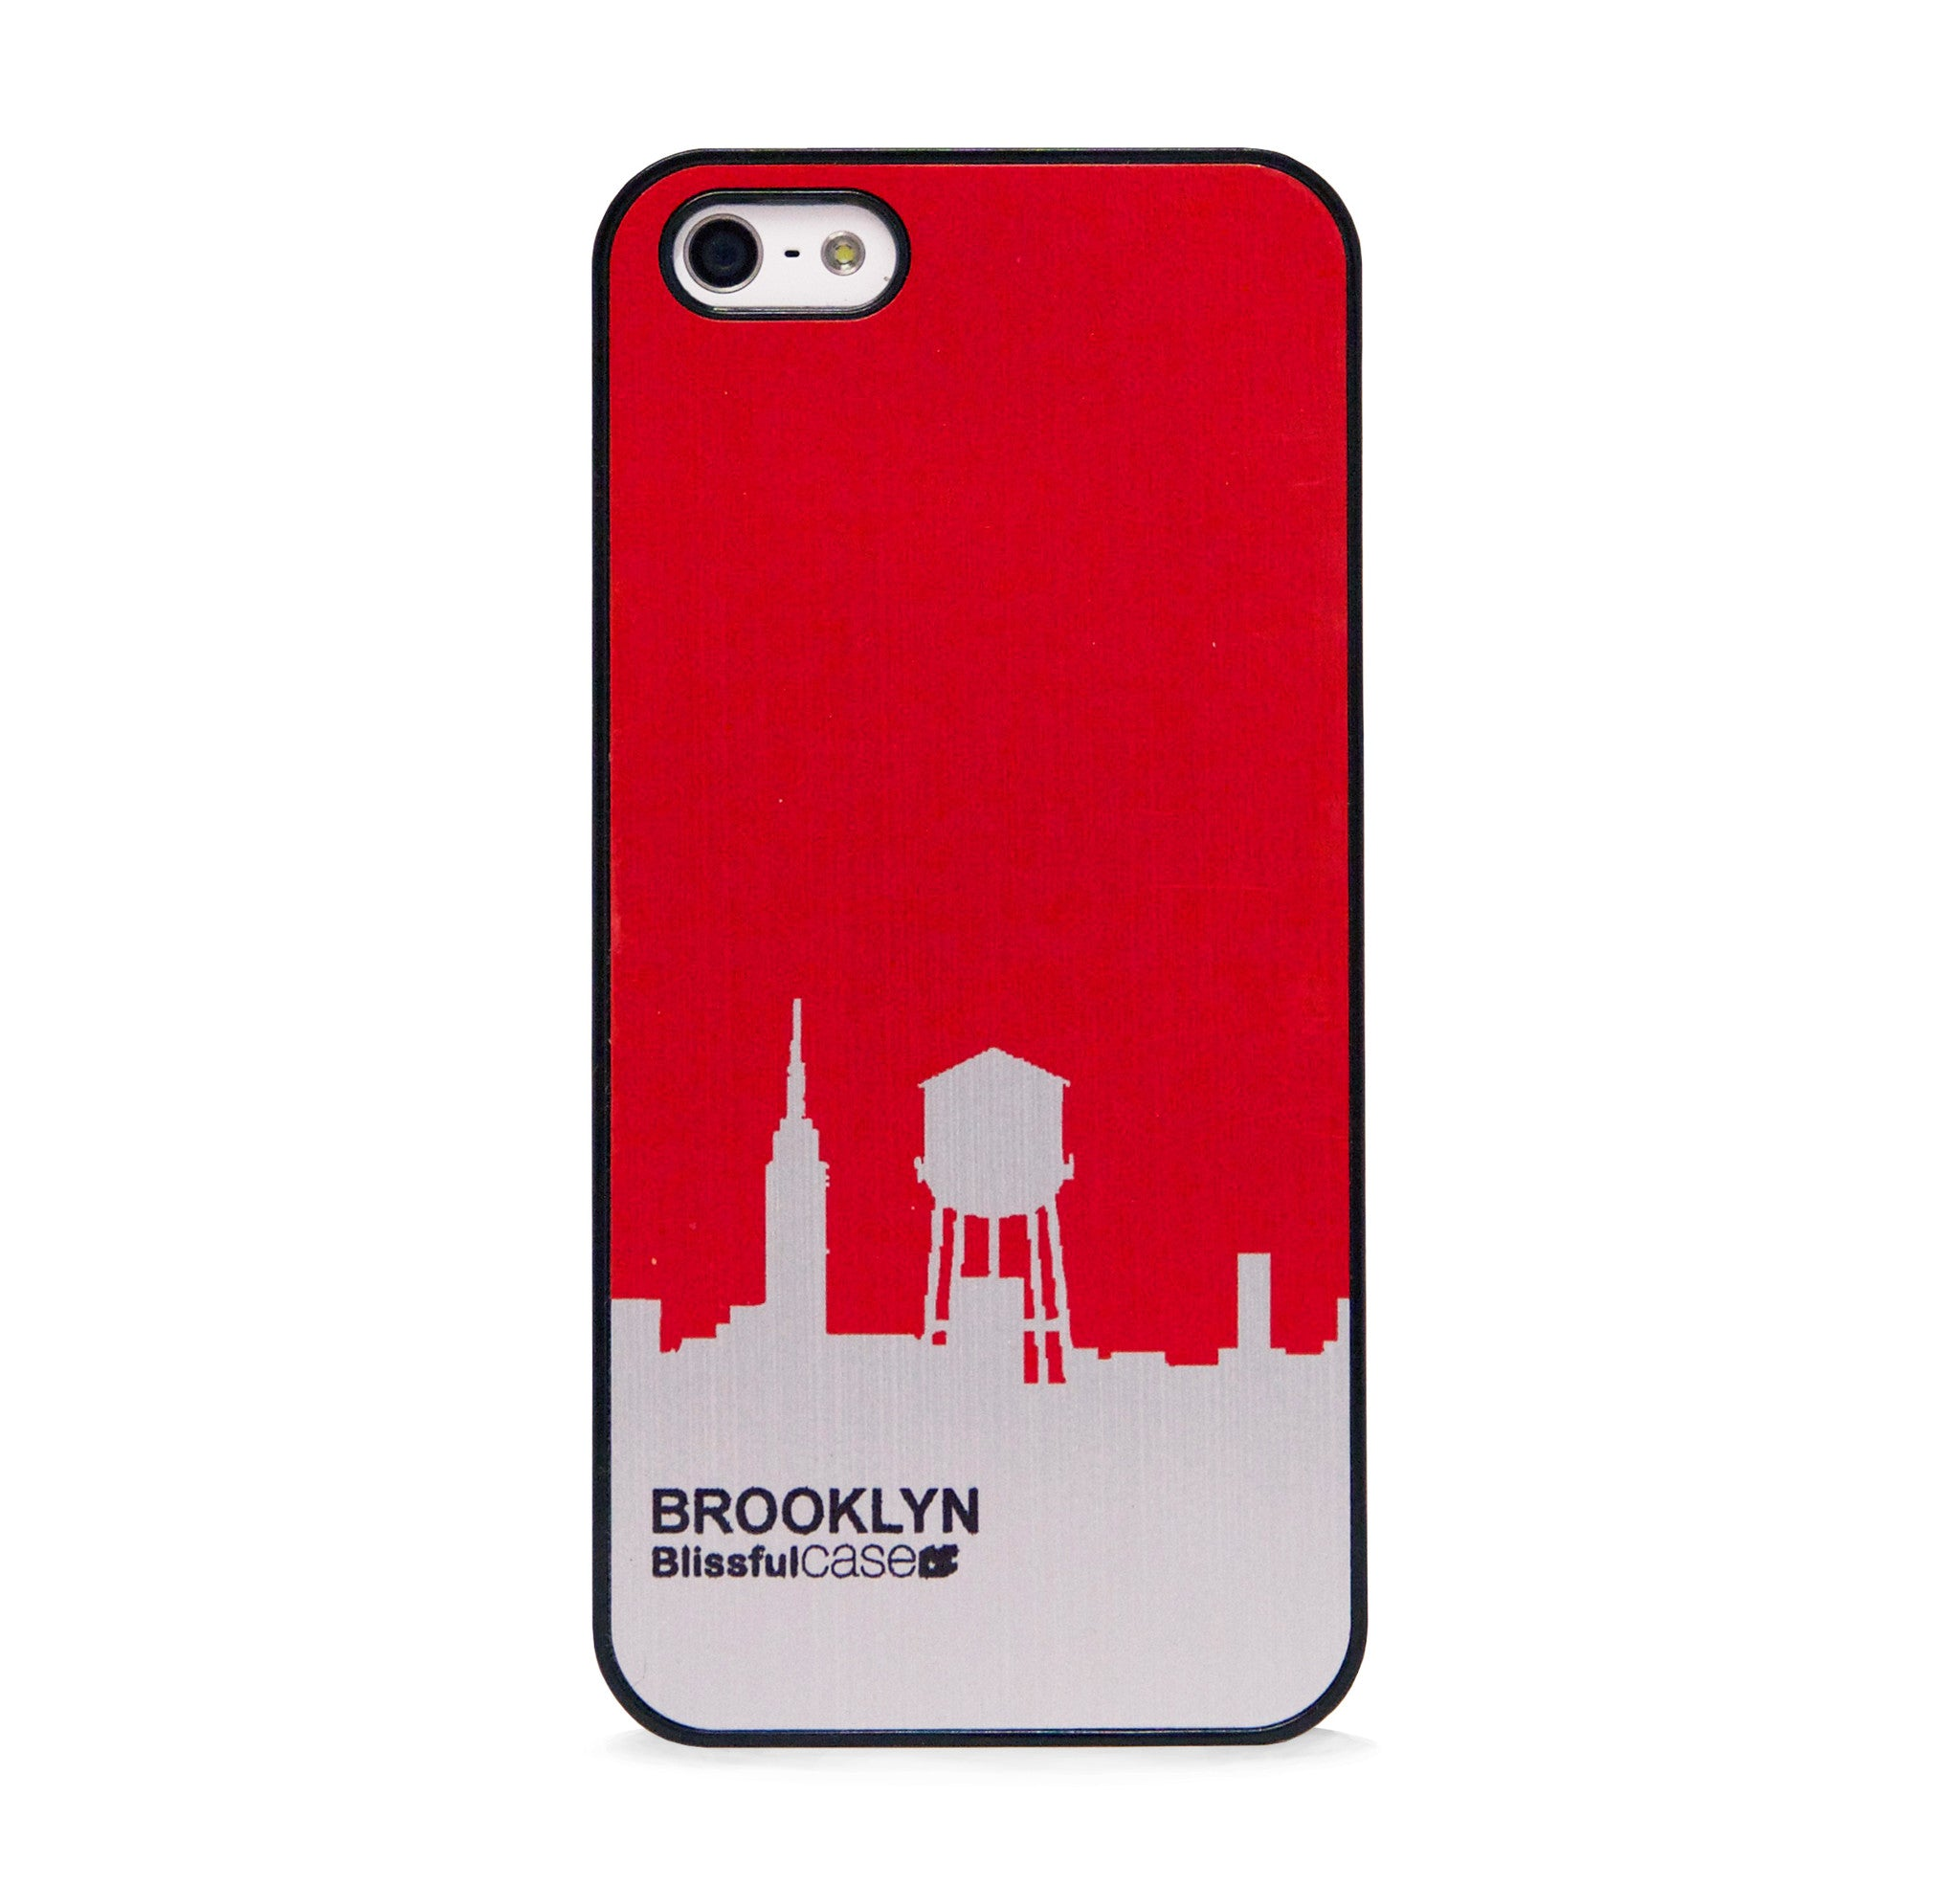 BROOKLYN RED IPHONE 5/5S CASE